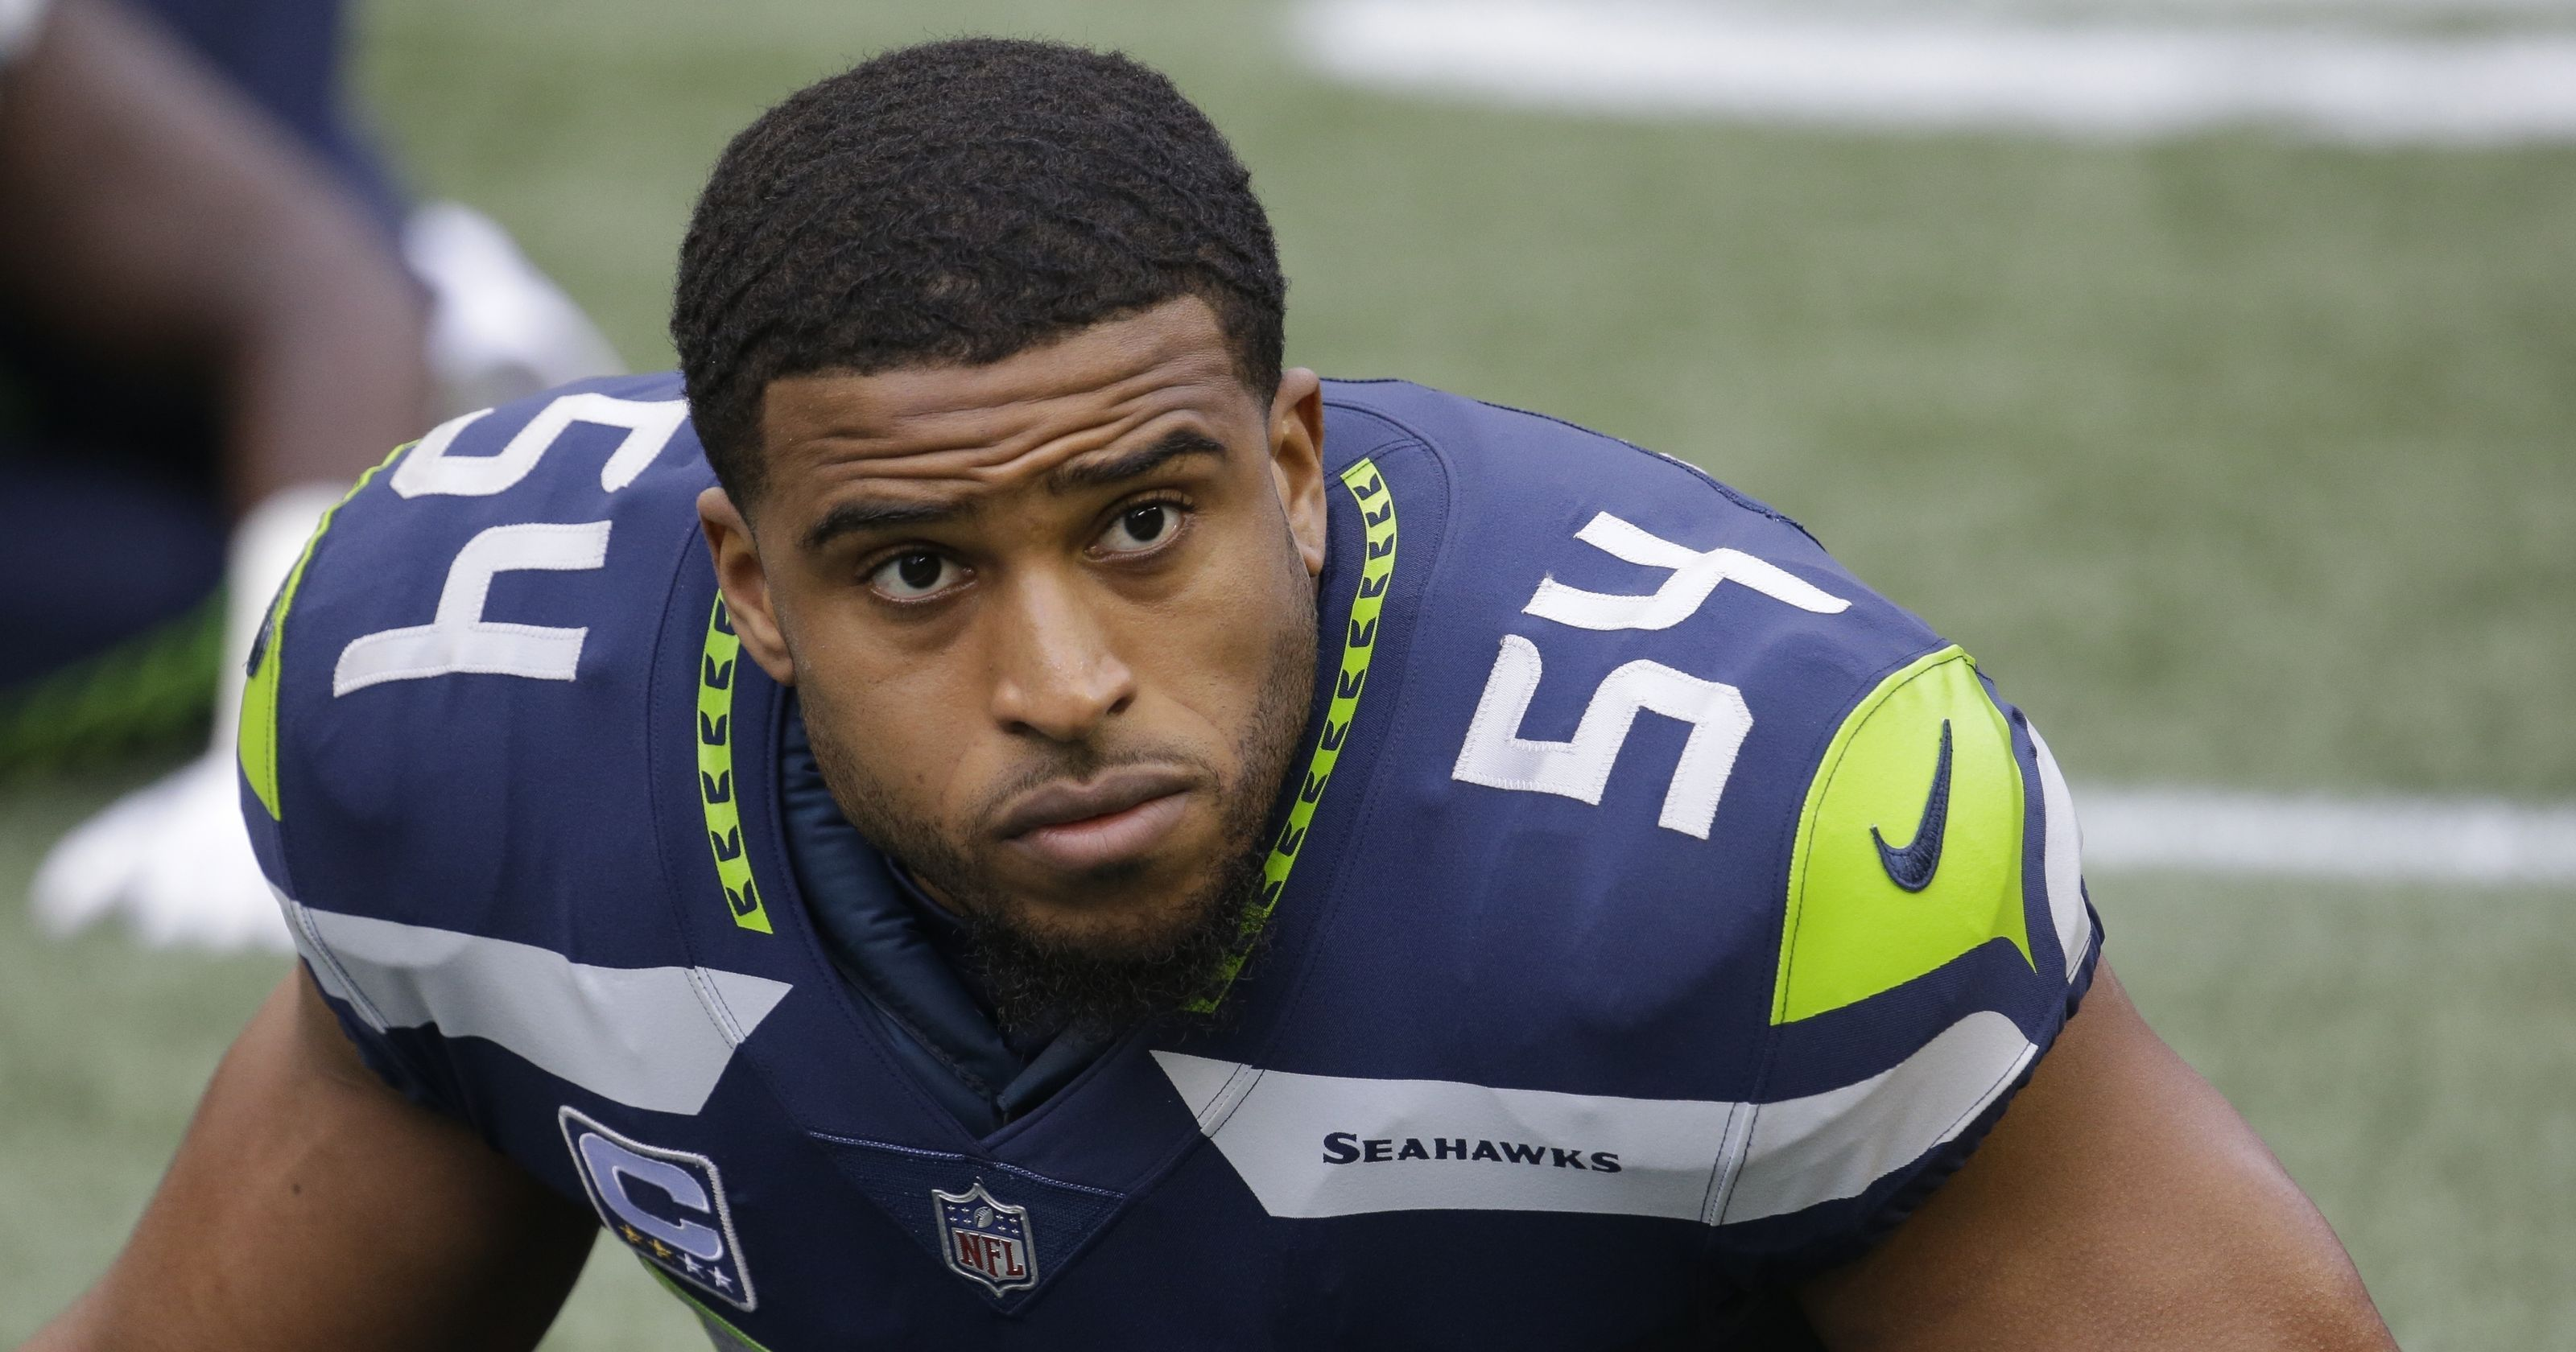 Wagner calls out teammate Earl Thomas on Twitter Dallas